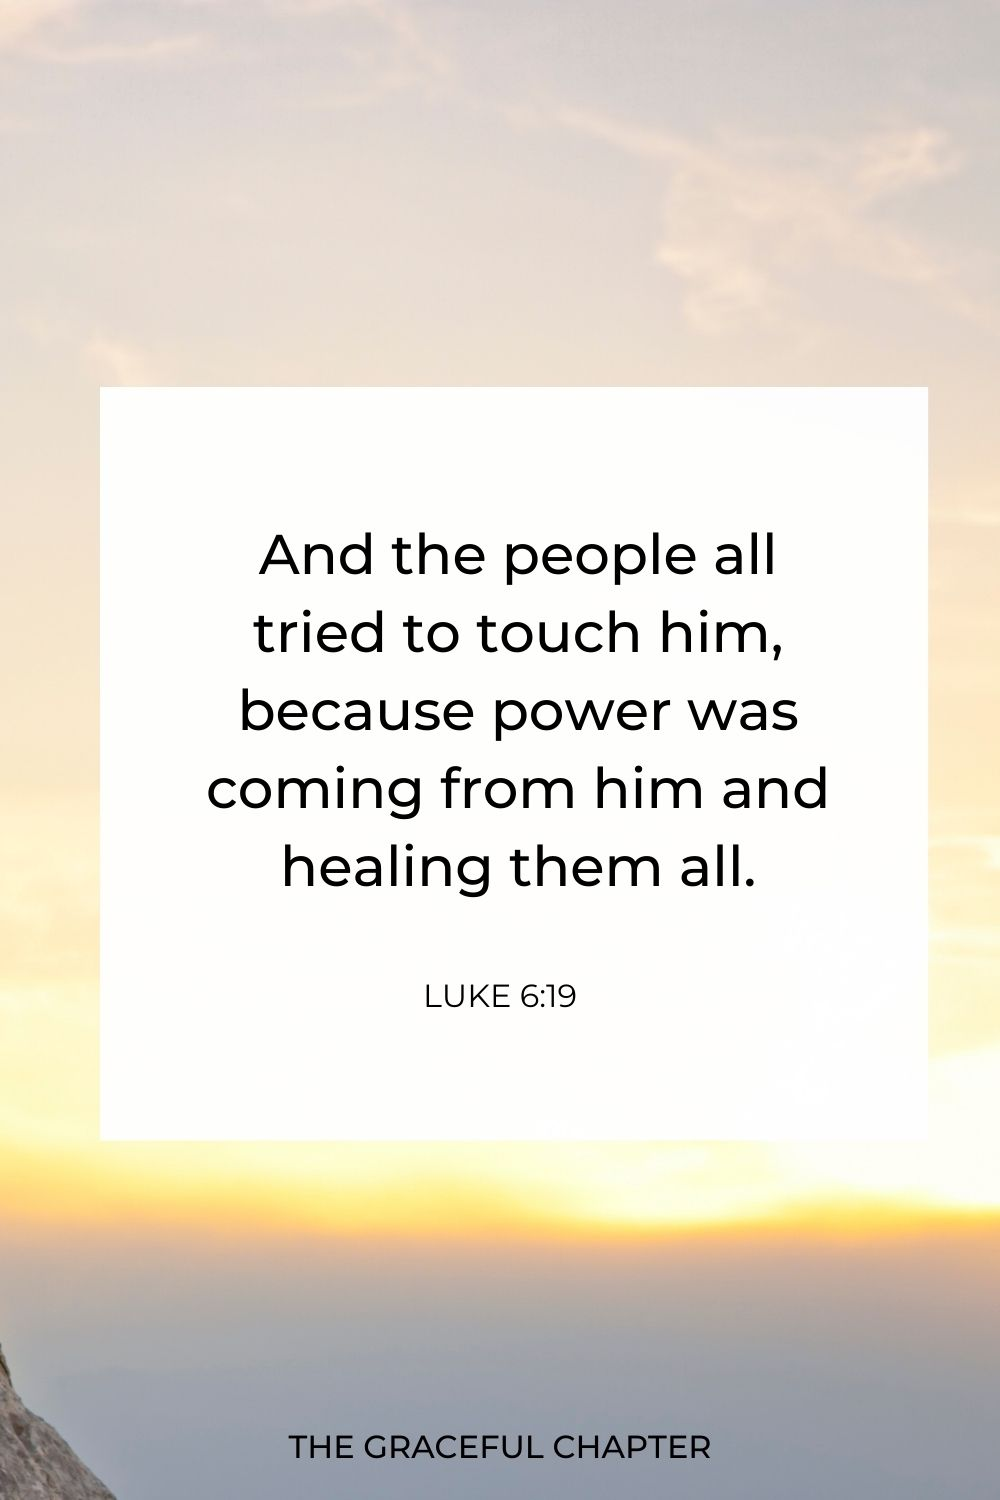 And the people all tried to touch him, because power was coming from him and healing them all. Luke 6:19